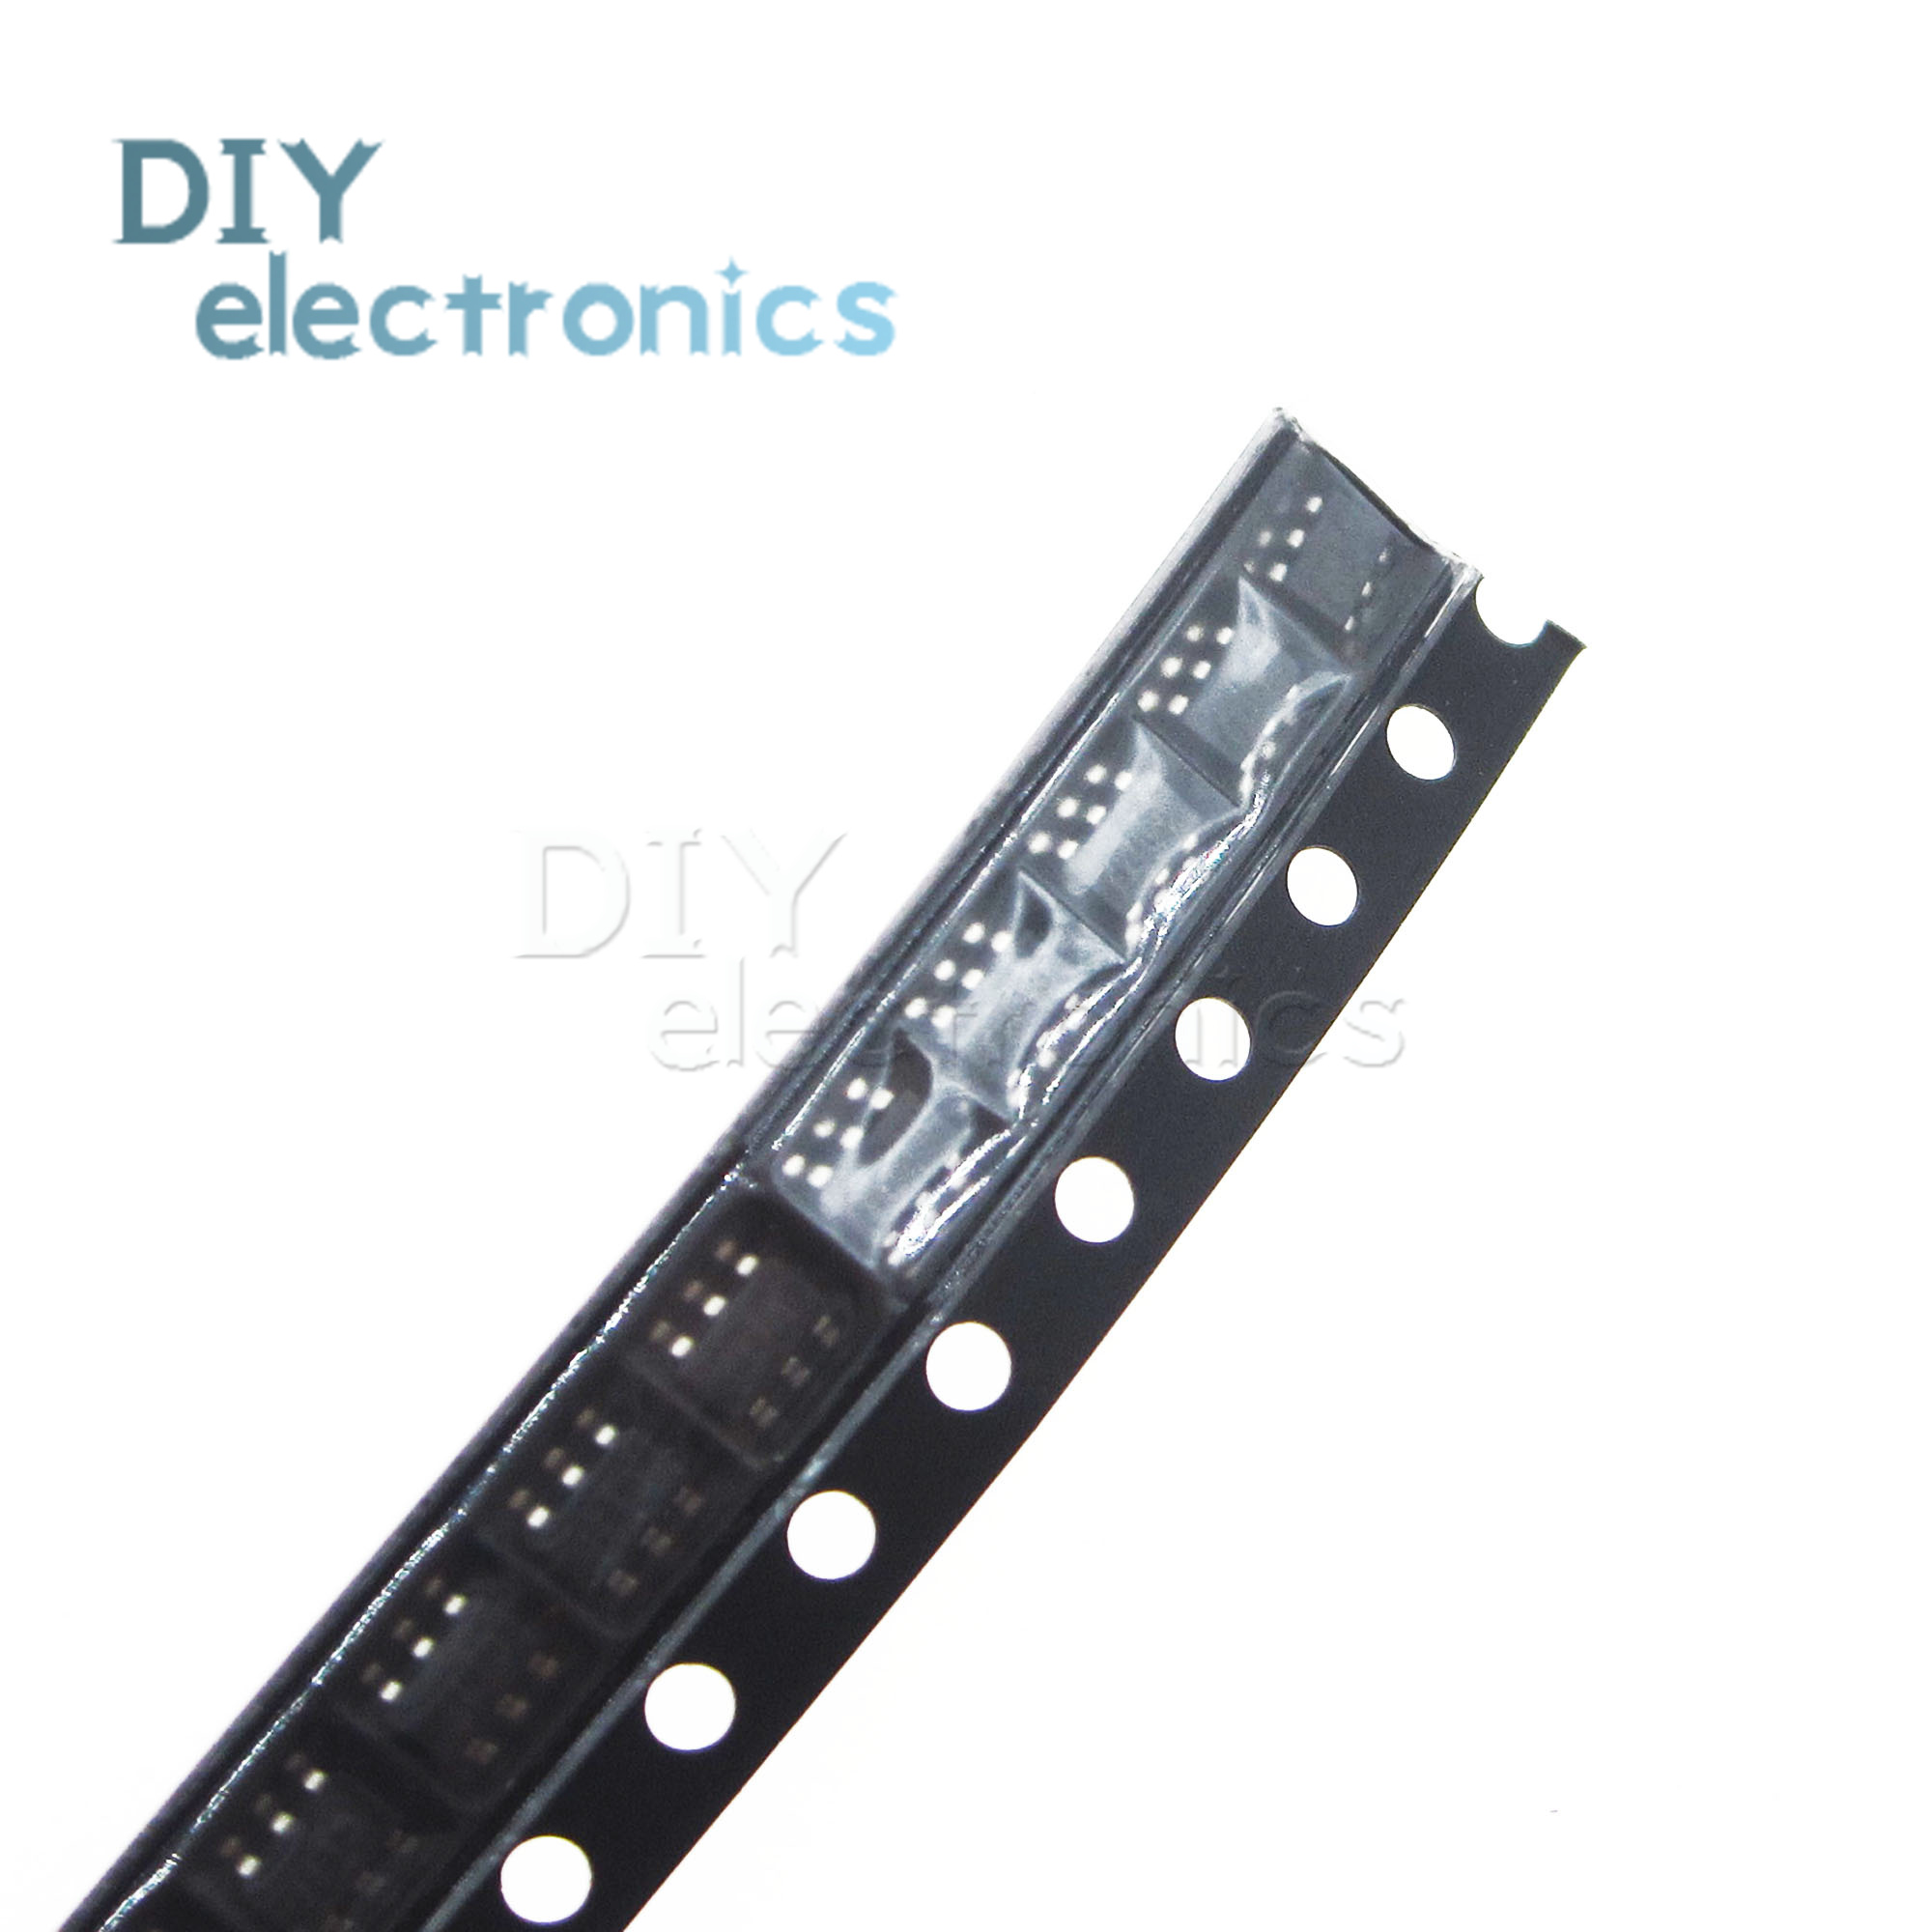 AMP Receptacle//Connector 206306-1//2063061 NEW 37 HOLES